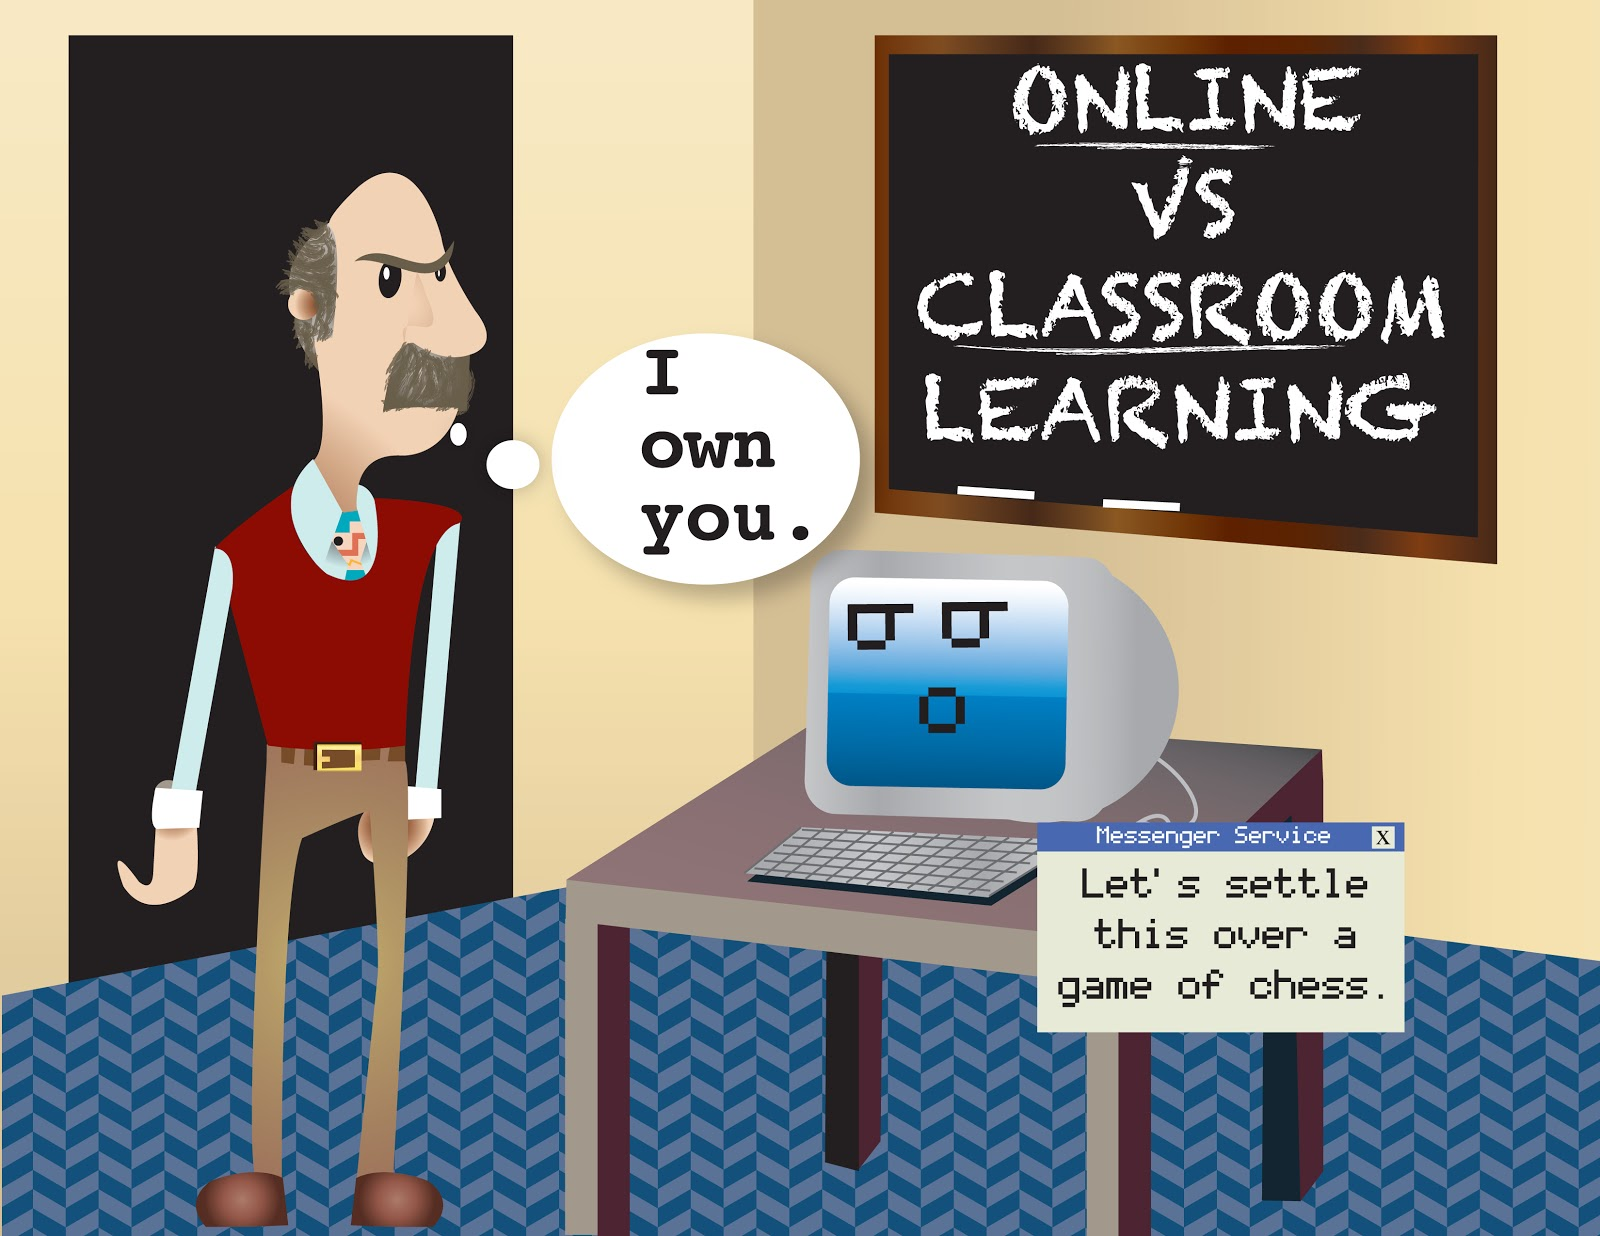 traditional classes vs online classes essay Online classes vs traditional classes online classes and traditional classes are both great ways to receive an education they both strive for the same purpose, which is to help students reach their goals during college although both online and traditional classes are great, they do differ in some ways the four major differences between these classes are, interaction between students and.